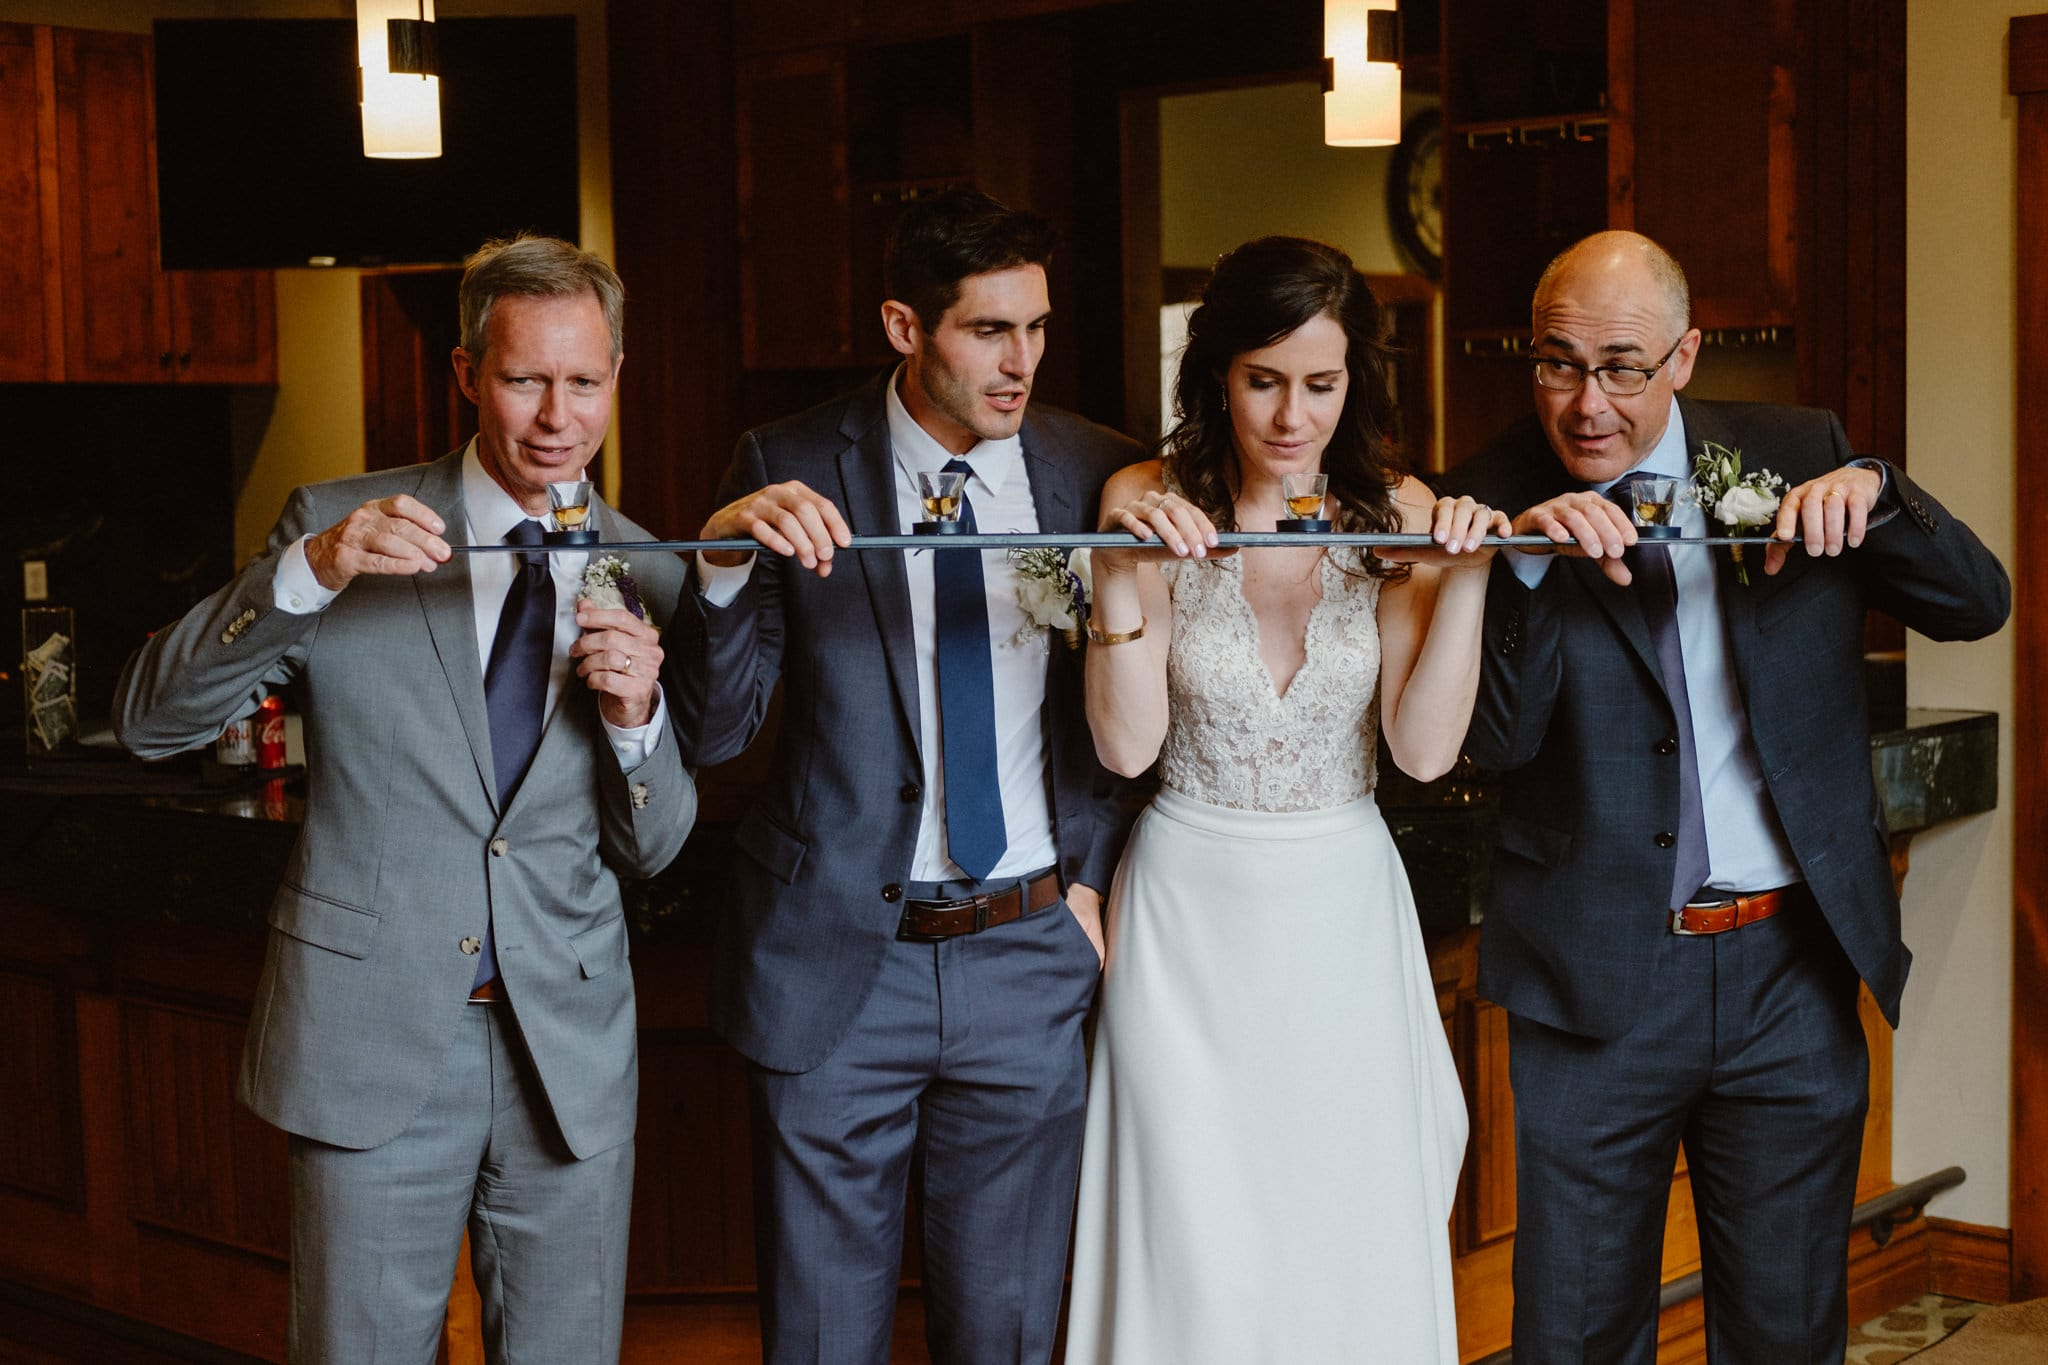 Bride and groom do shotski with their dads at Breckenridge wedding, Colorado wedding photographer